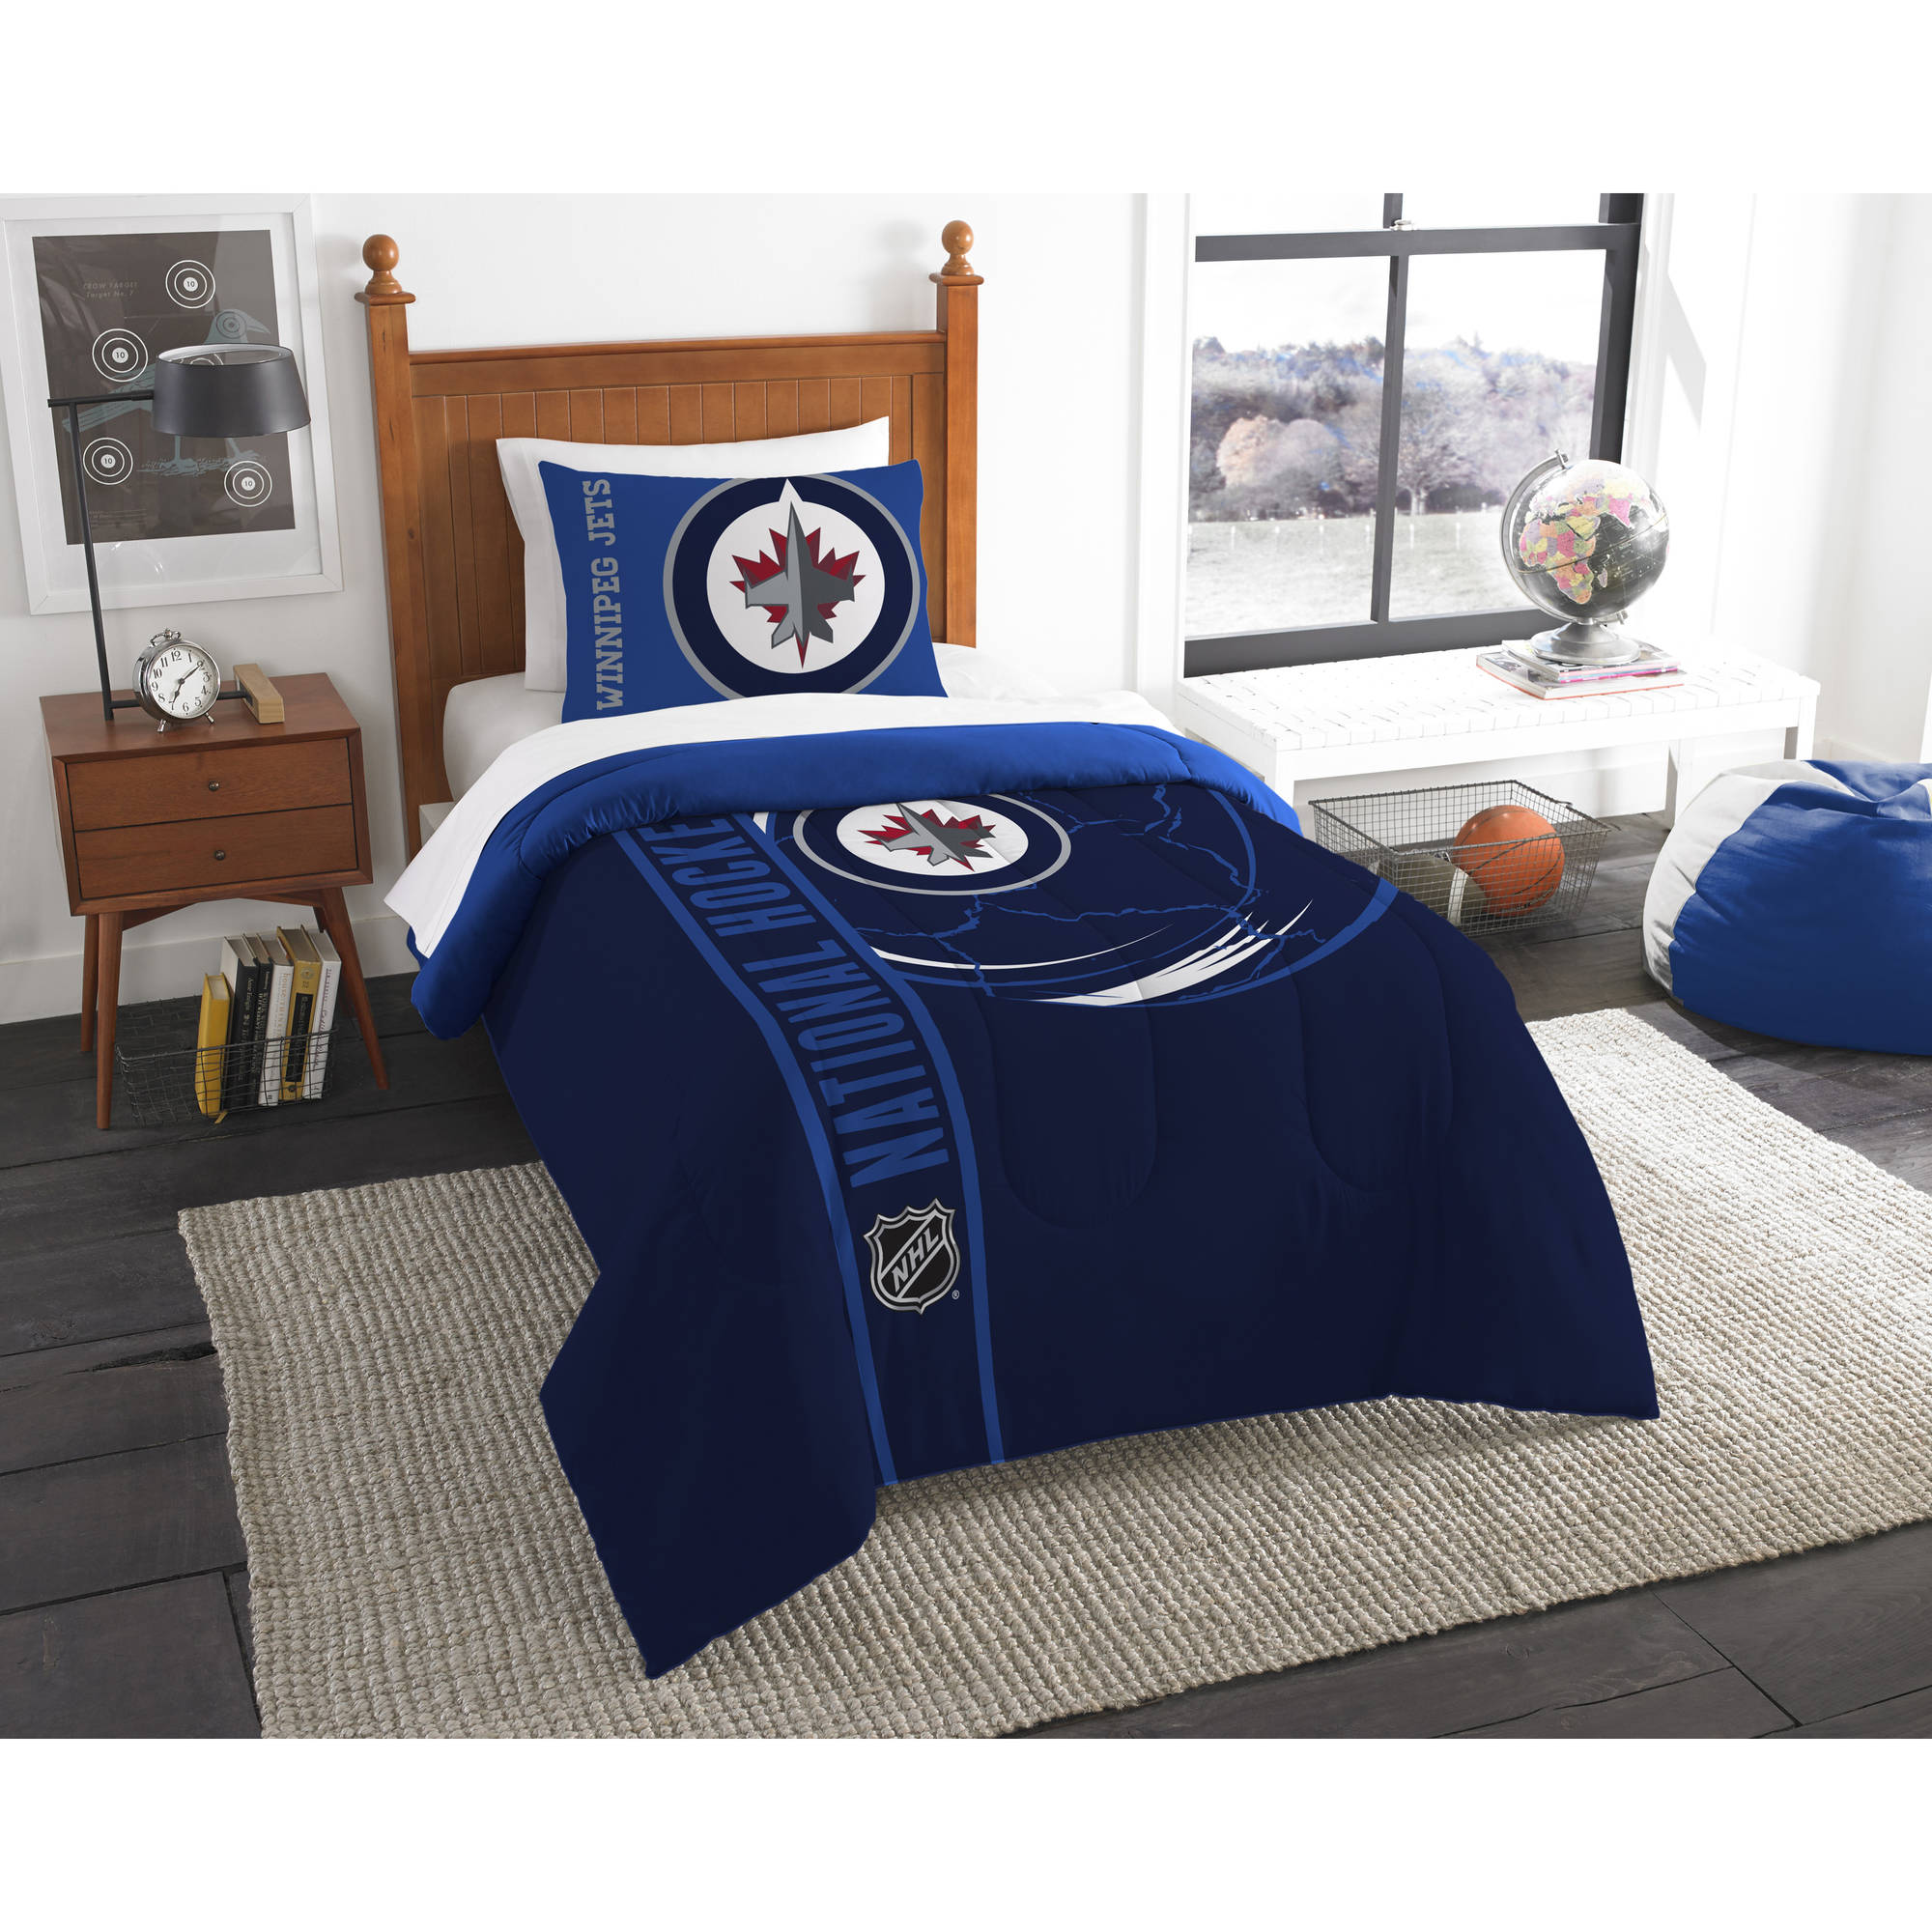 NHL Winnipeg Jets Printed Twin Comforter and Sham Set